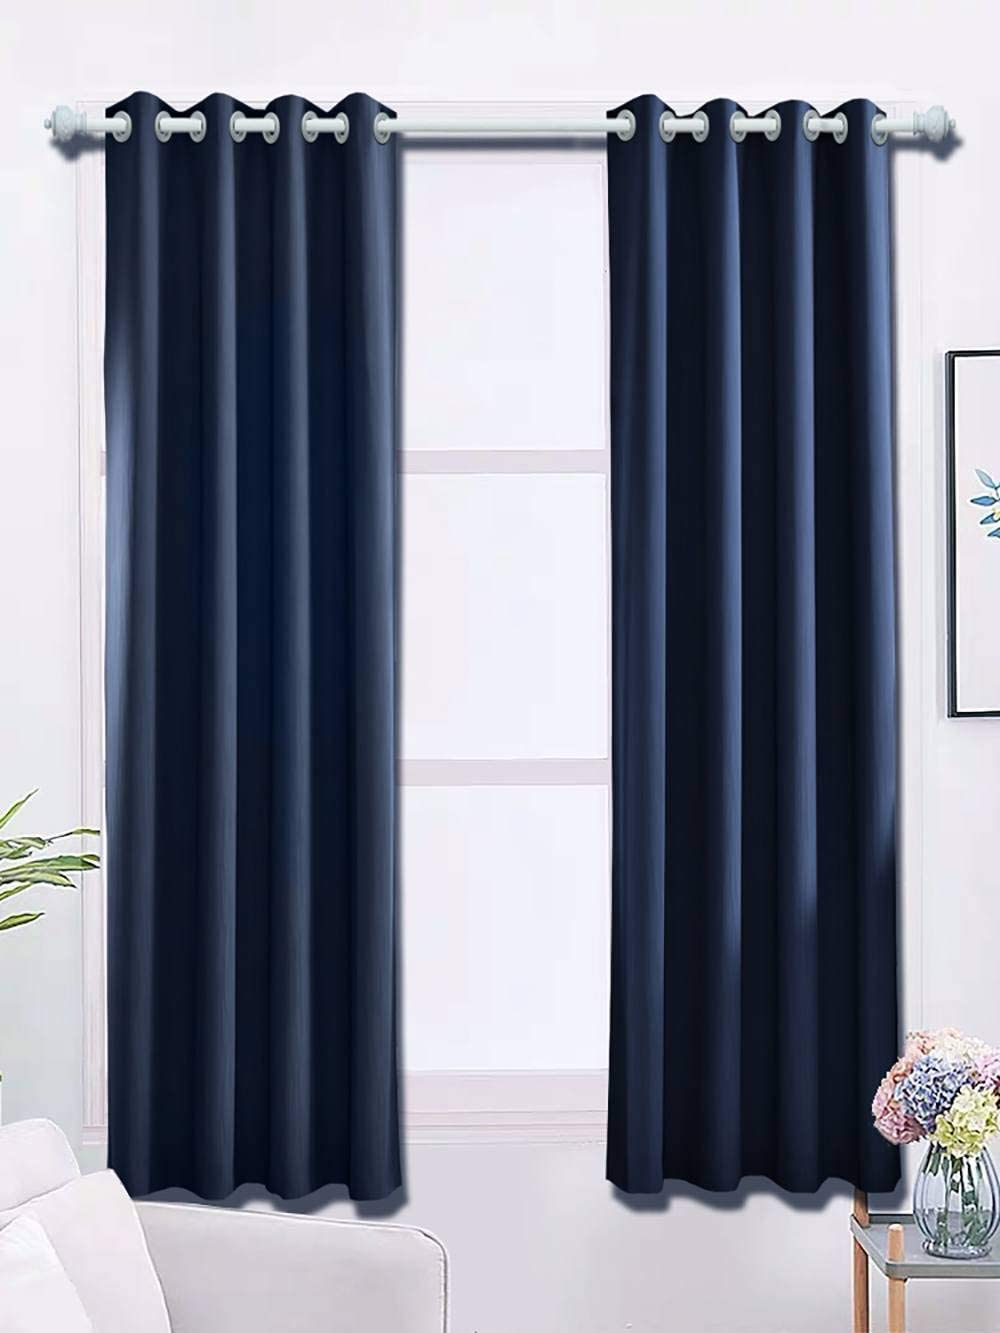 Orval Navy Blackout, Soundproof, Thermal Insulated, Polyester, All Season, Window Curtains with Grommets Tiebacks for Home Kitchen Drawing Room Set of 2 Panels, Each 42 X 96 Inch